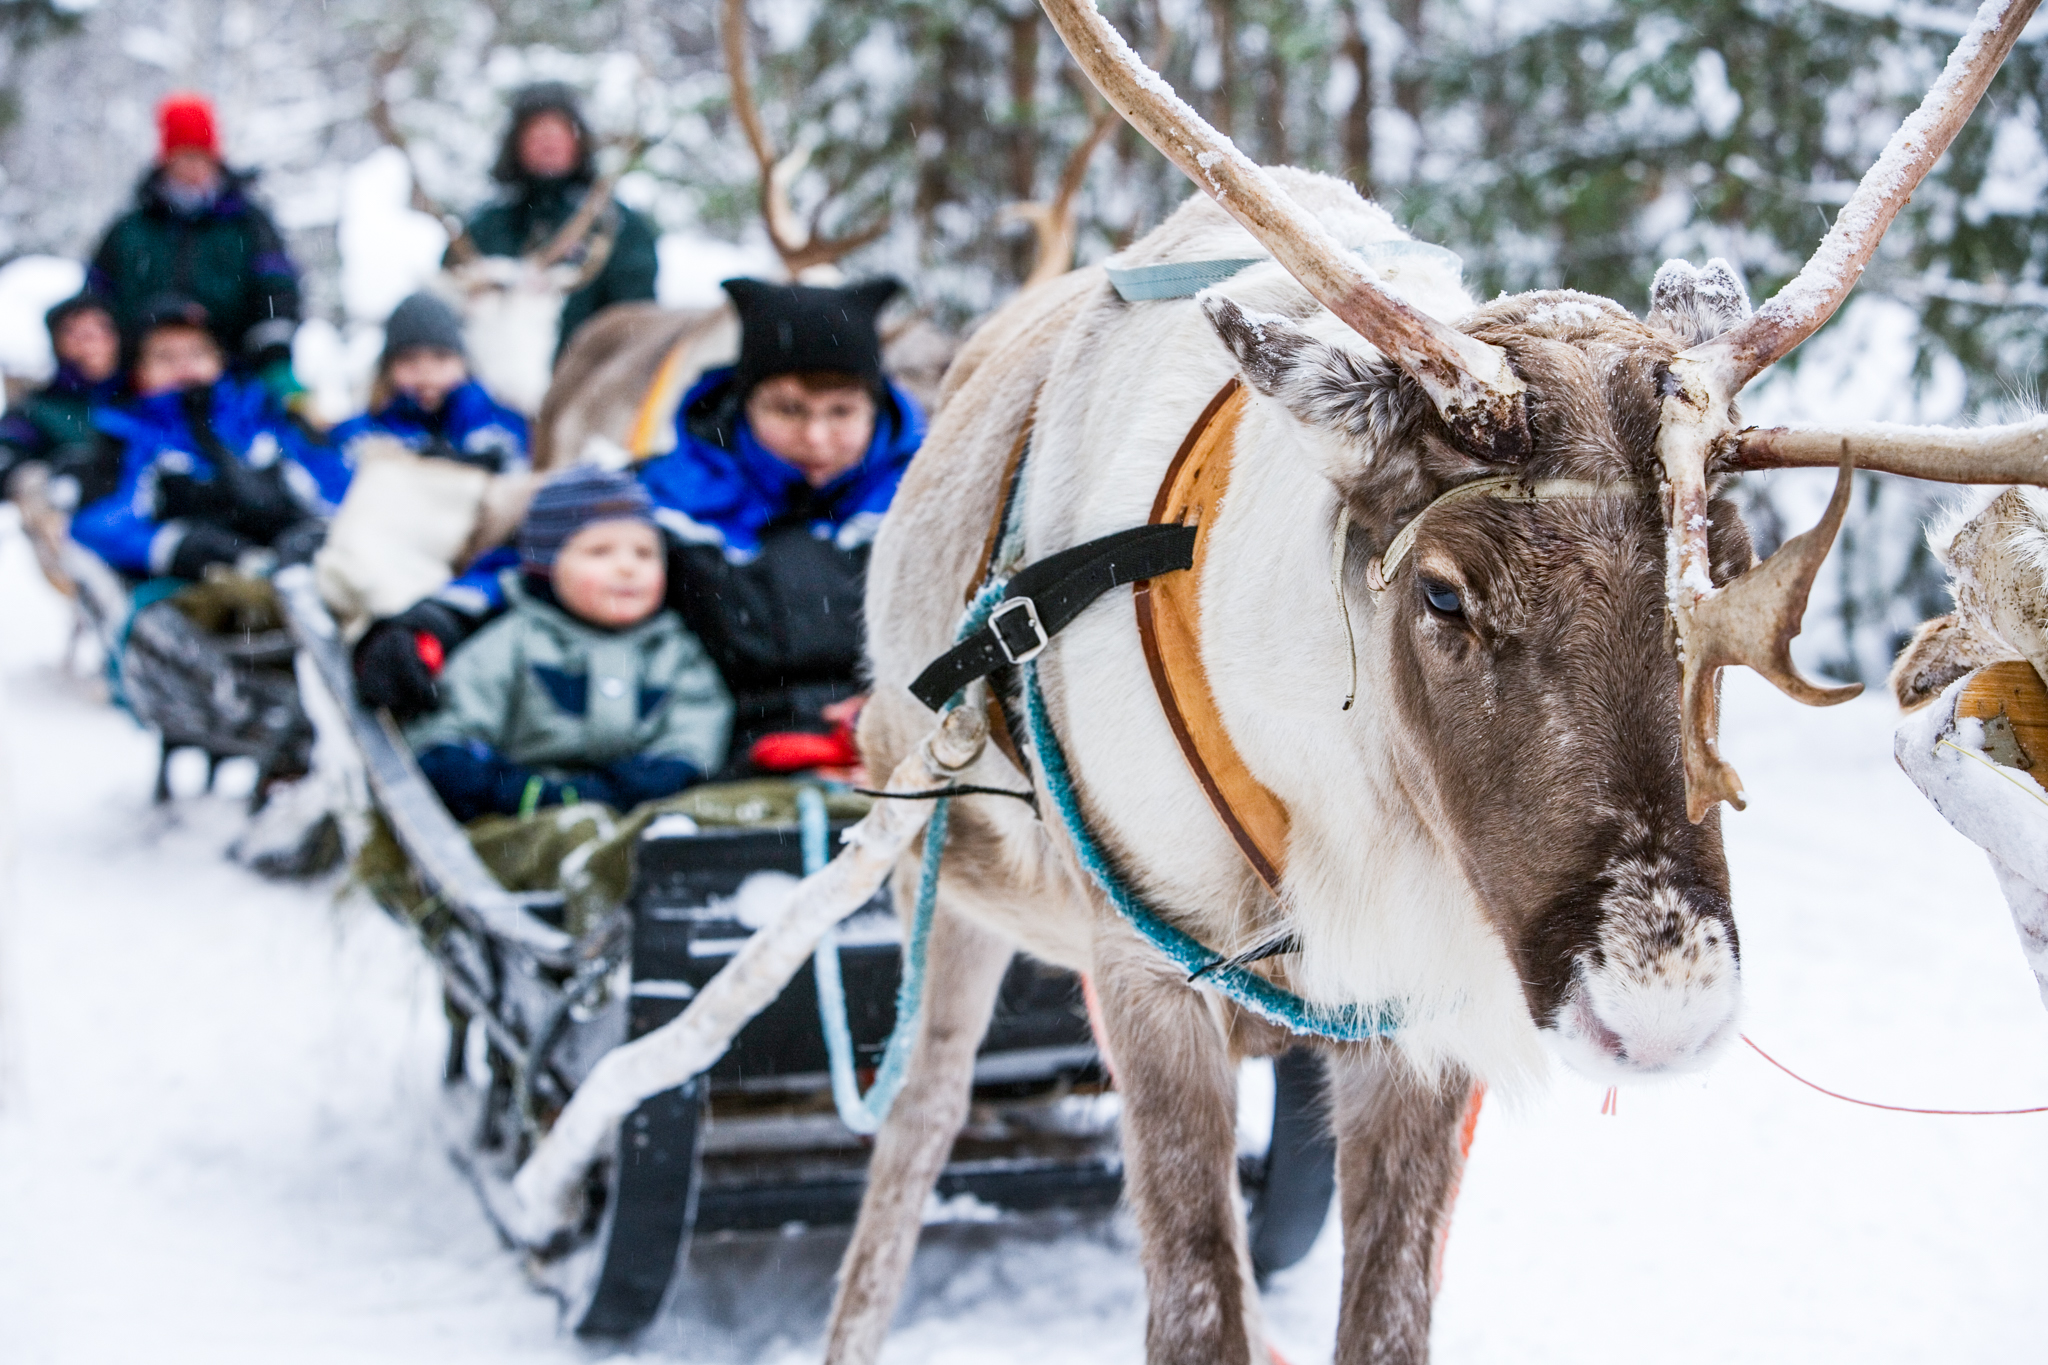 reindeer pulling sleight with woman and child